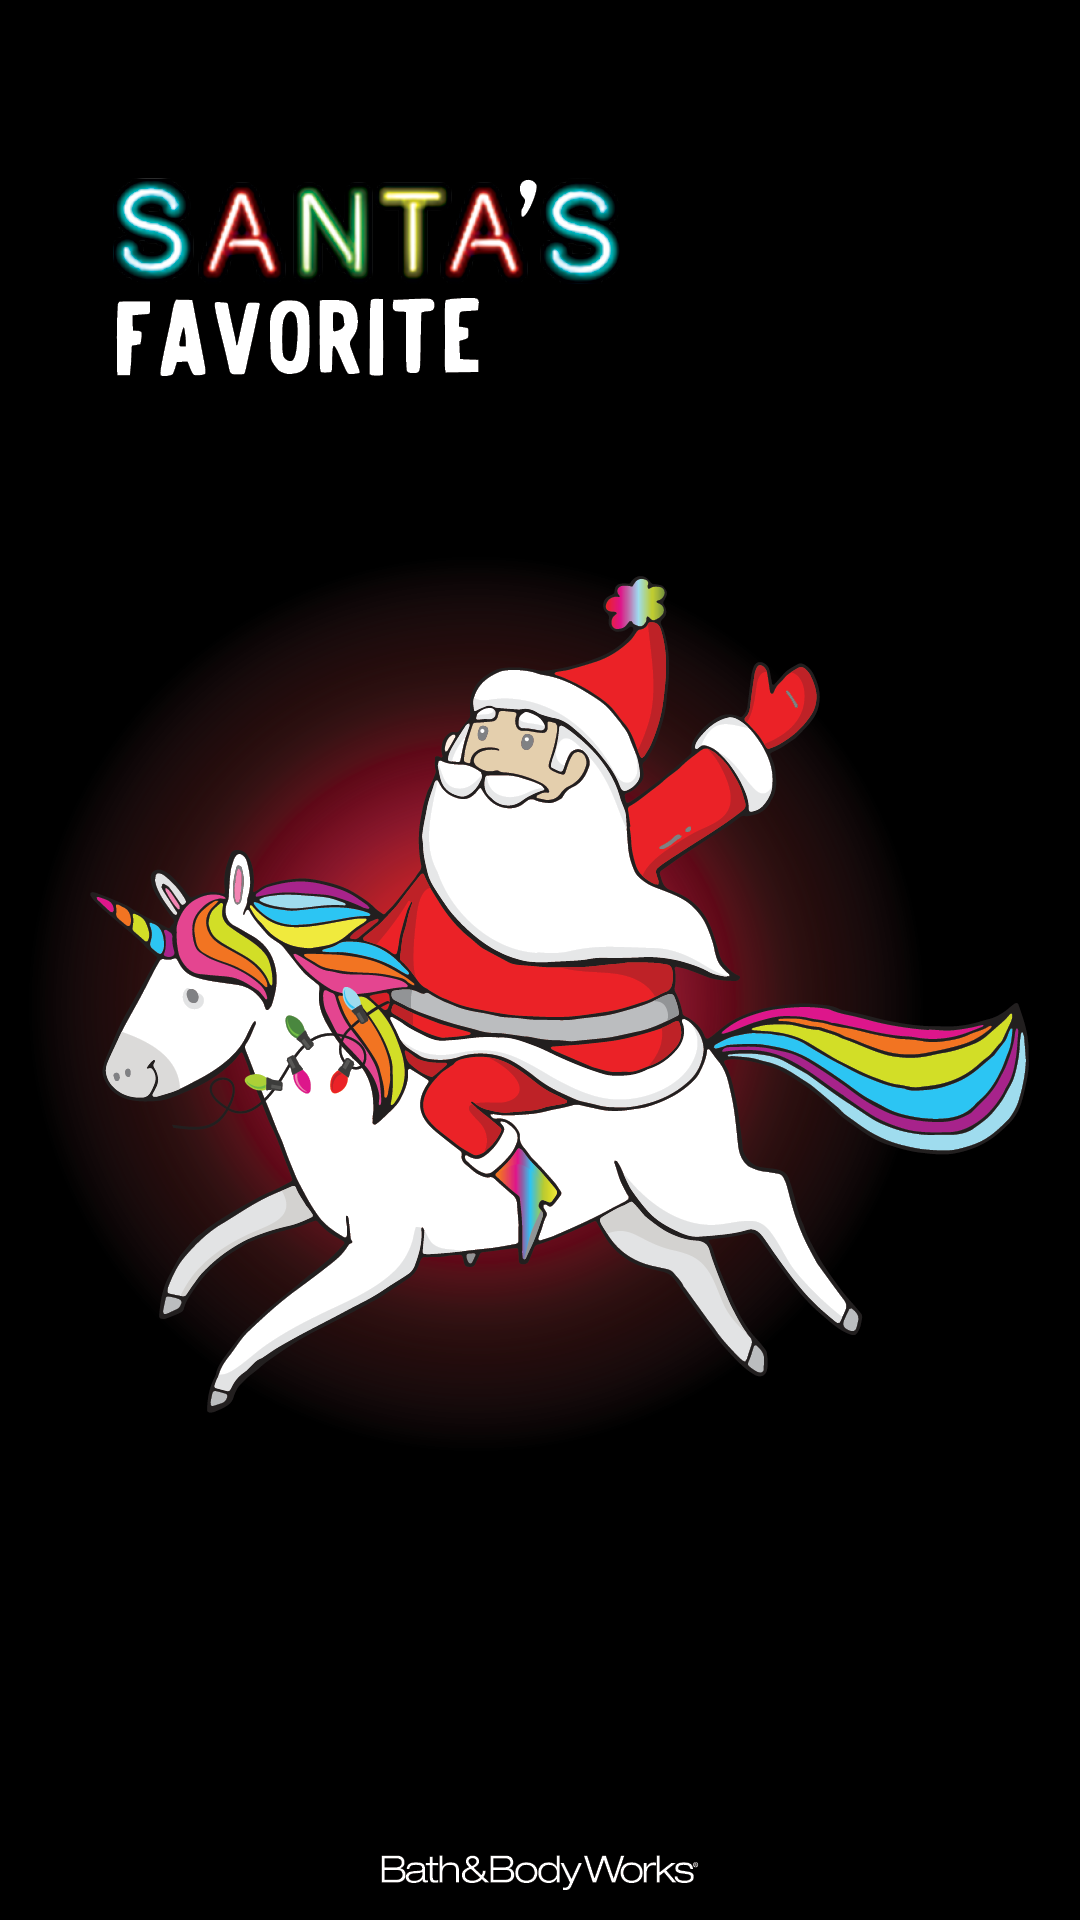 Christmas Unicorn Sticker By Merch And More Christmas Unicorn Christmas Cartoons Merry Christmas Images